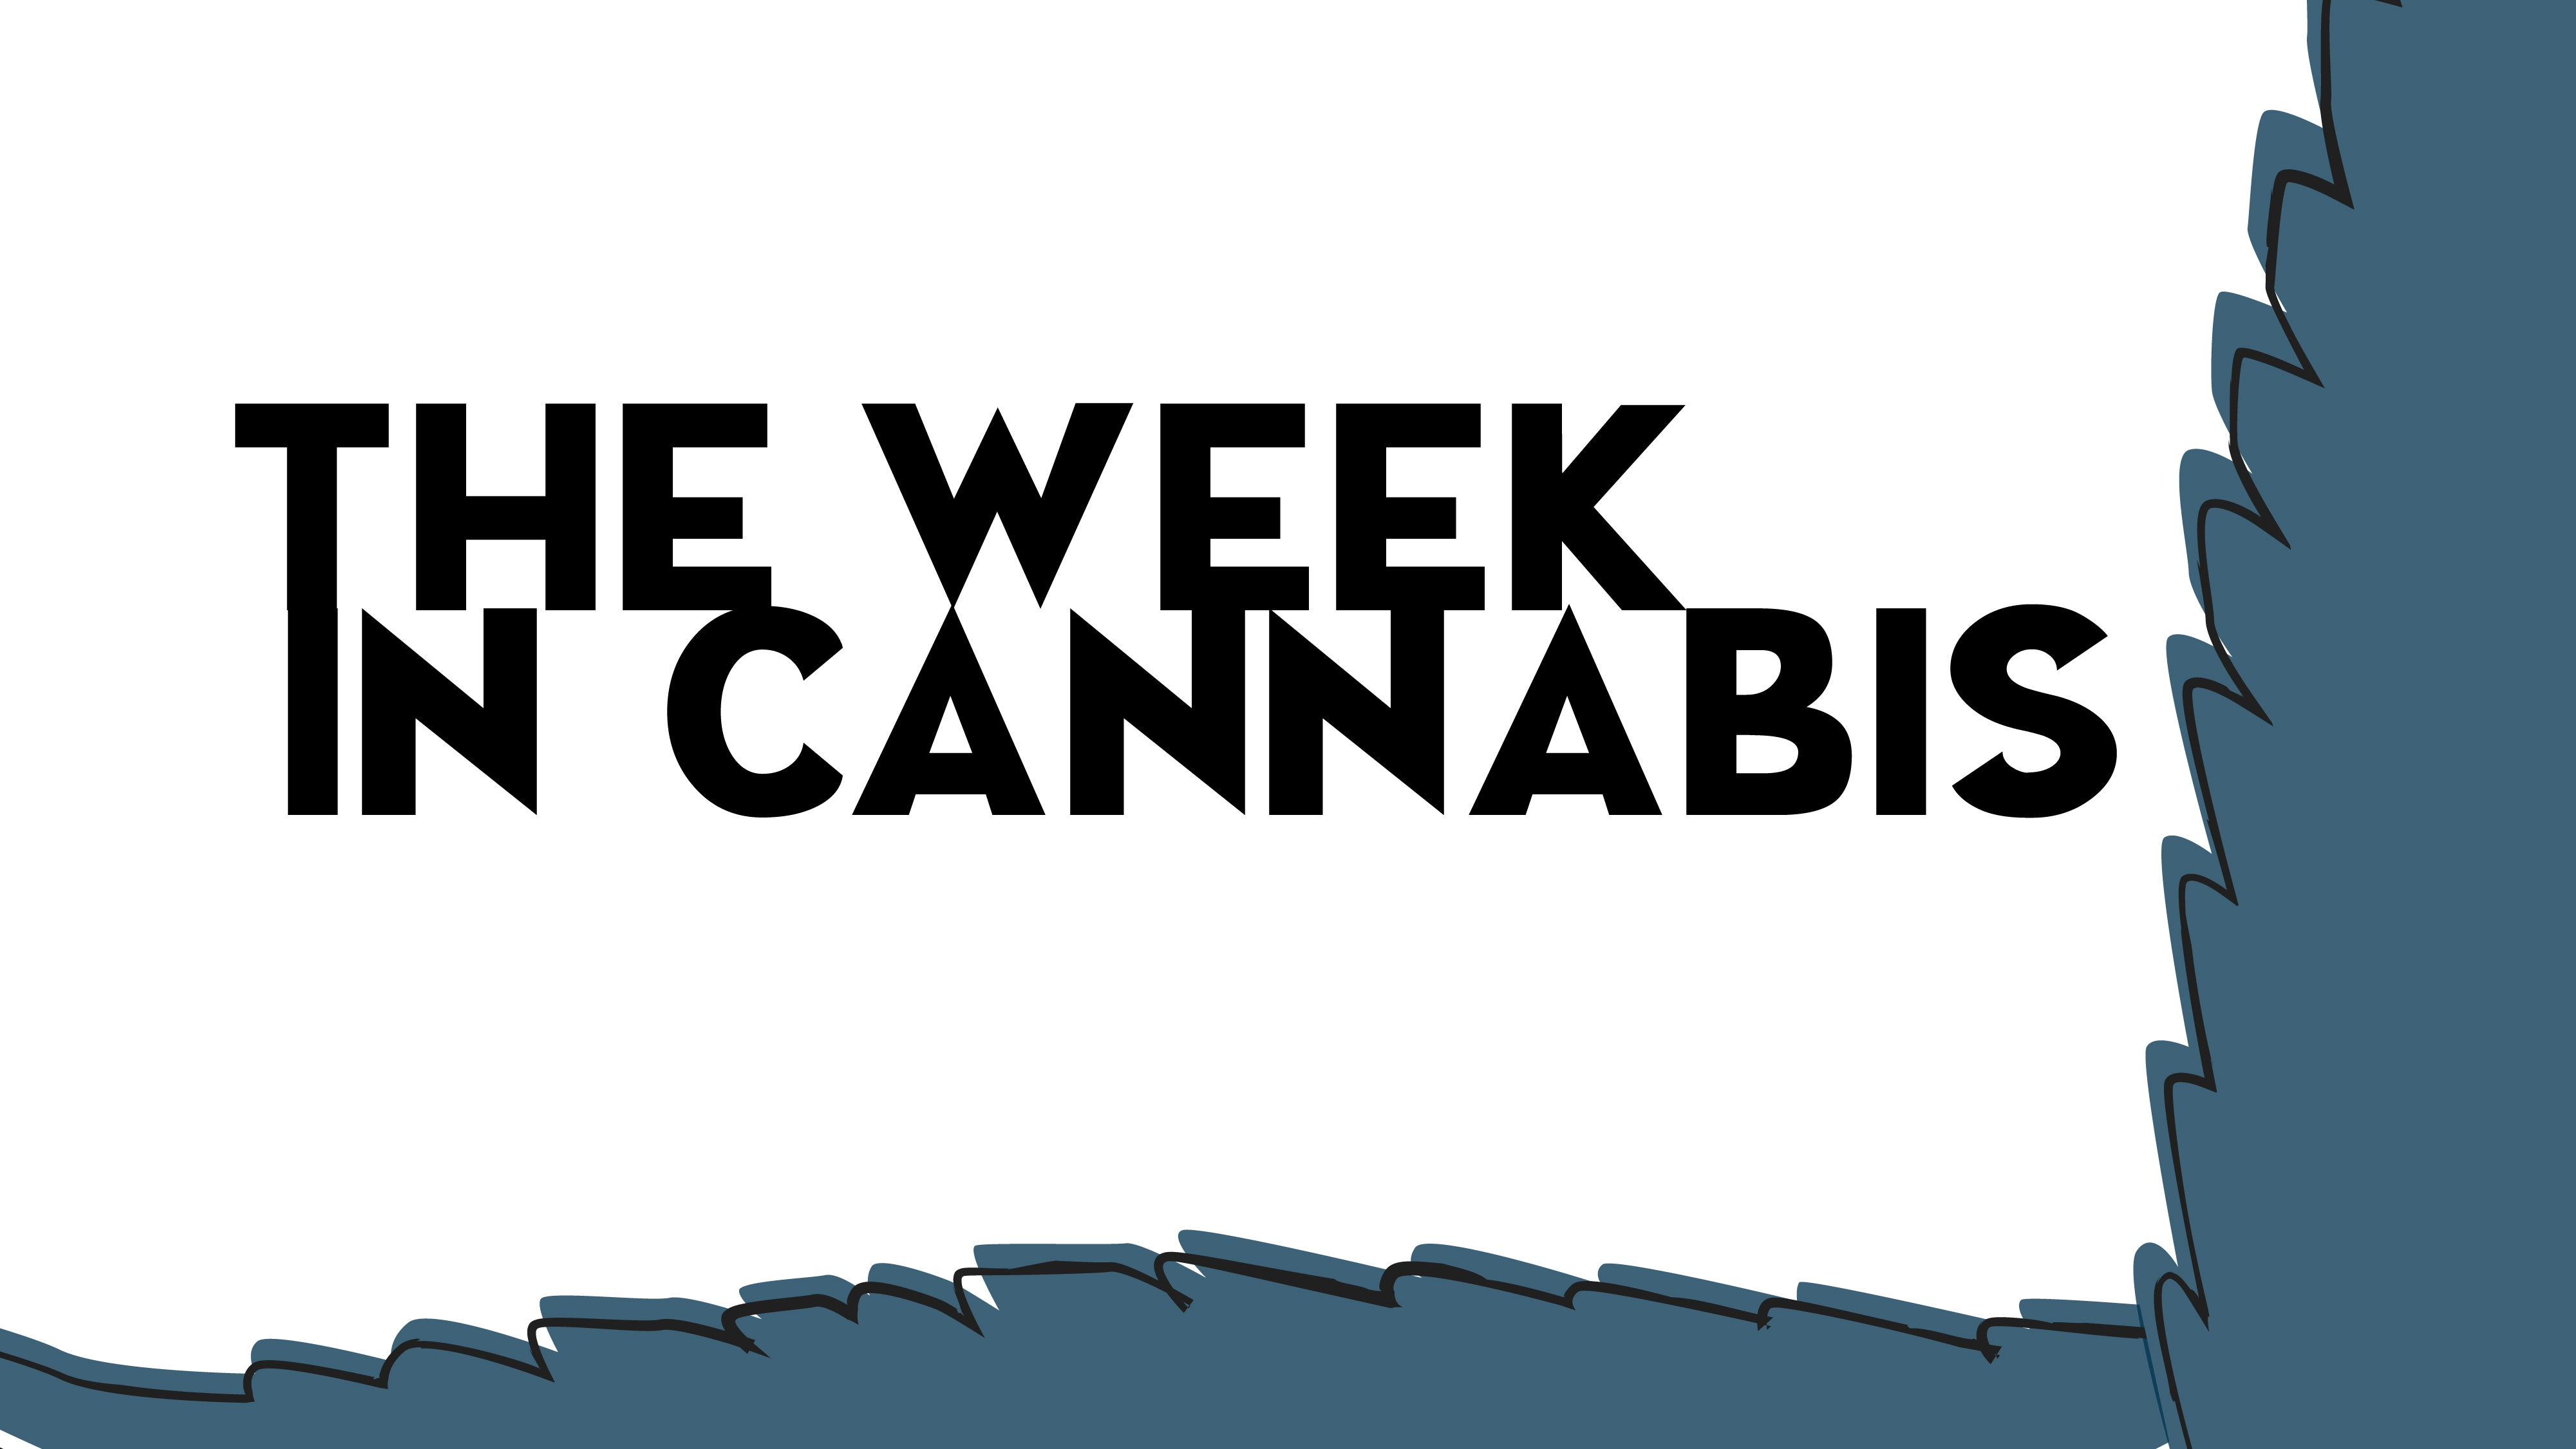 benzinga.com - Javier Hasse - The Week In Cannabis: Stocks Underperform Broader Market, Bad News For Zynerba, Organigram And More